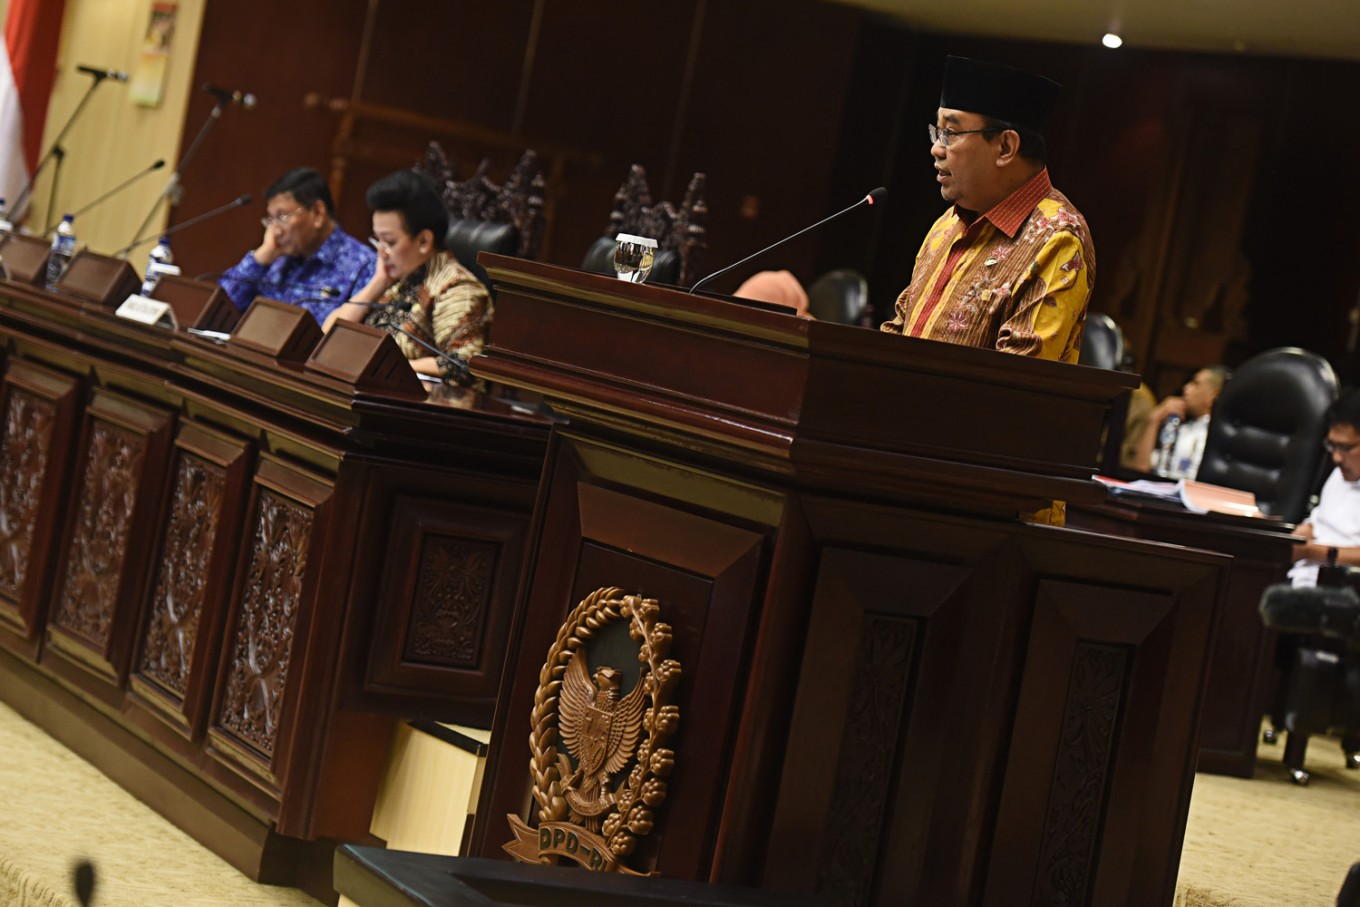 Komnas HAM bears responsibility in alleged budget misuse: Lawmaker